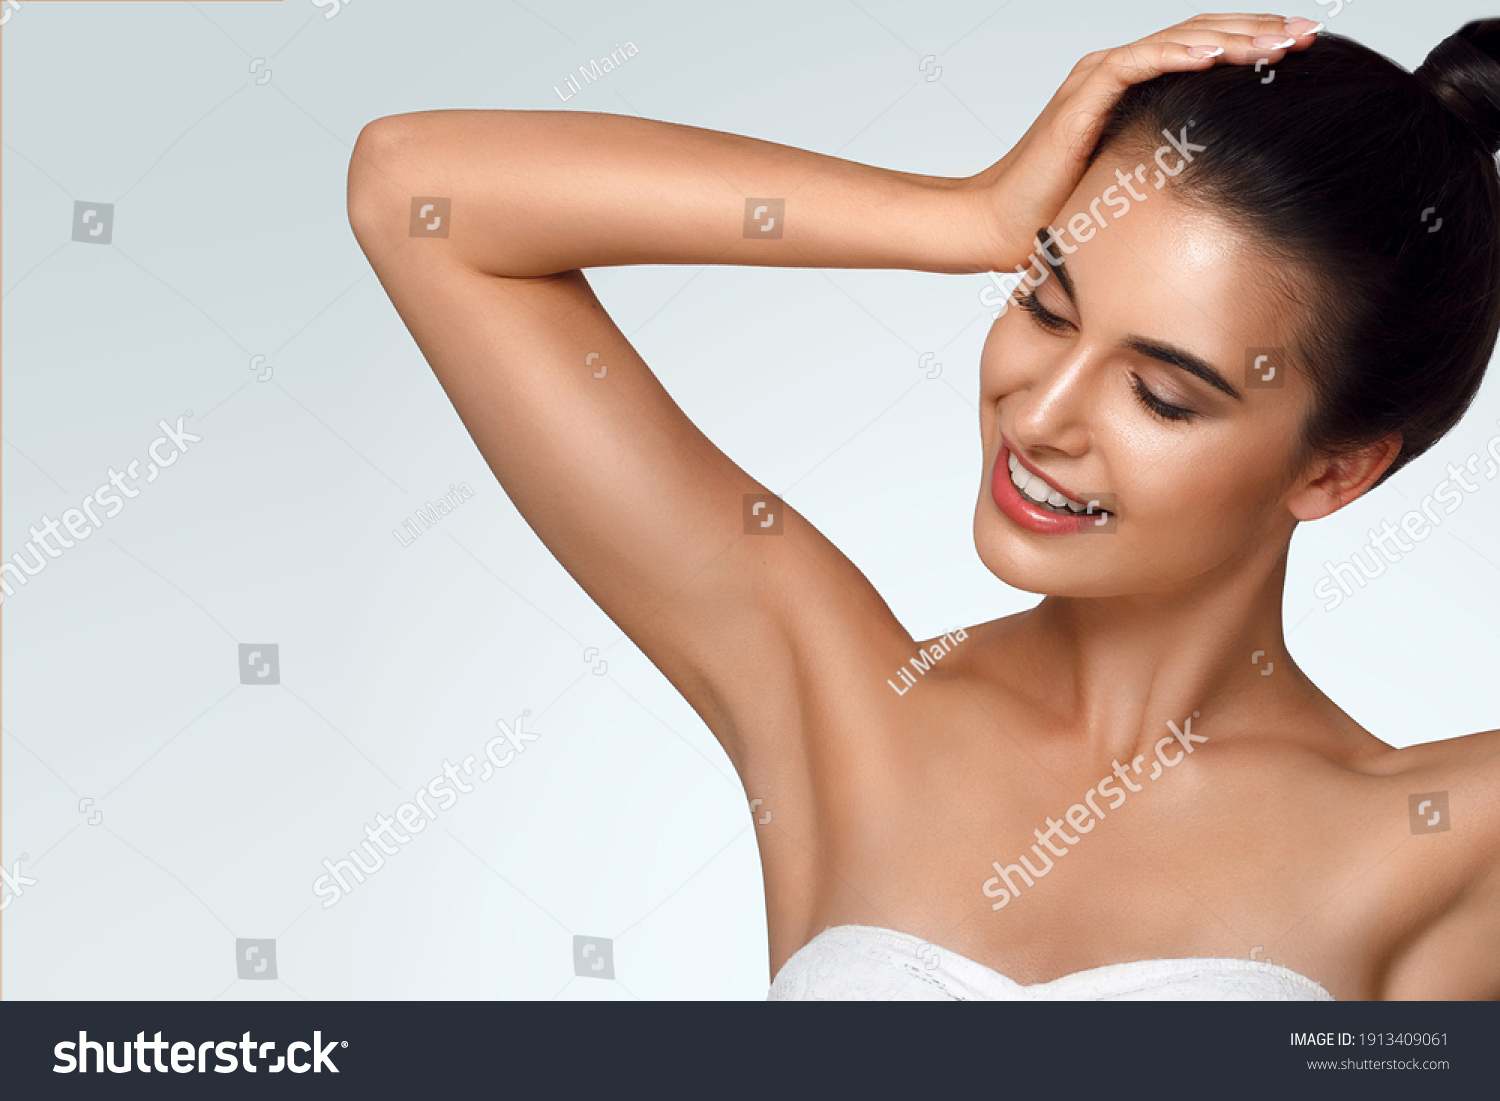 Caucasian beautiful girl holds hair in hand, raise up hands. Beauty young woman, salon body and armpit skin care, smooth armpit skin, hair removal and sugaring. Happy girl with closed eyes #1913409061